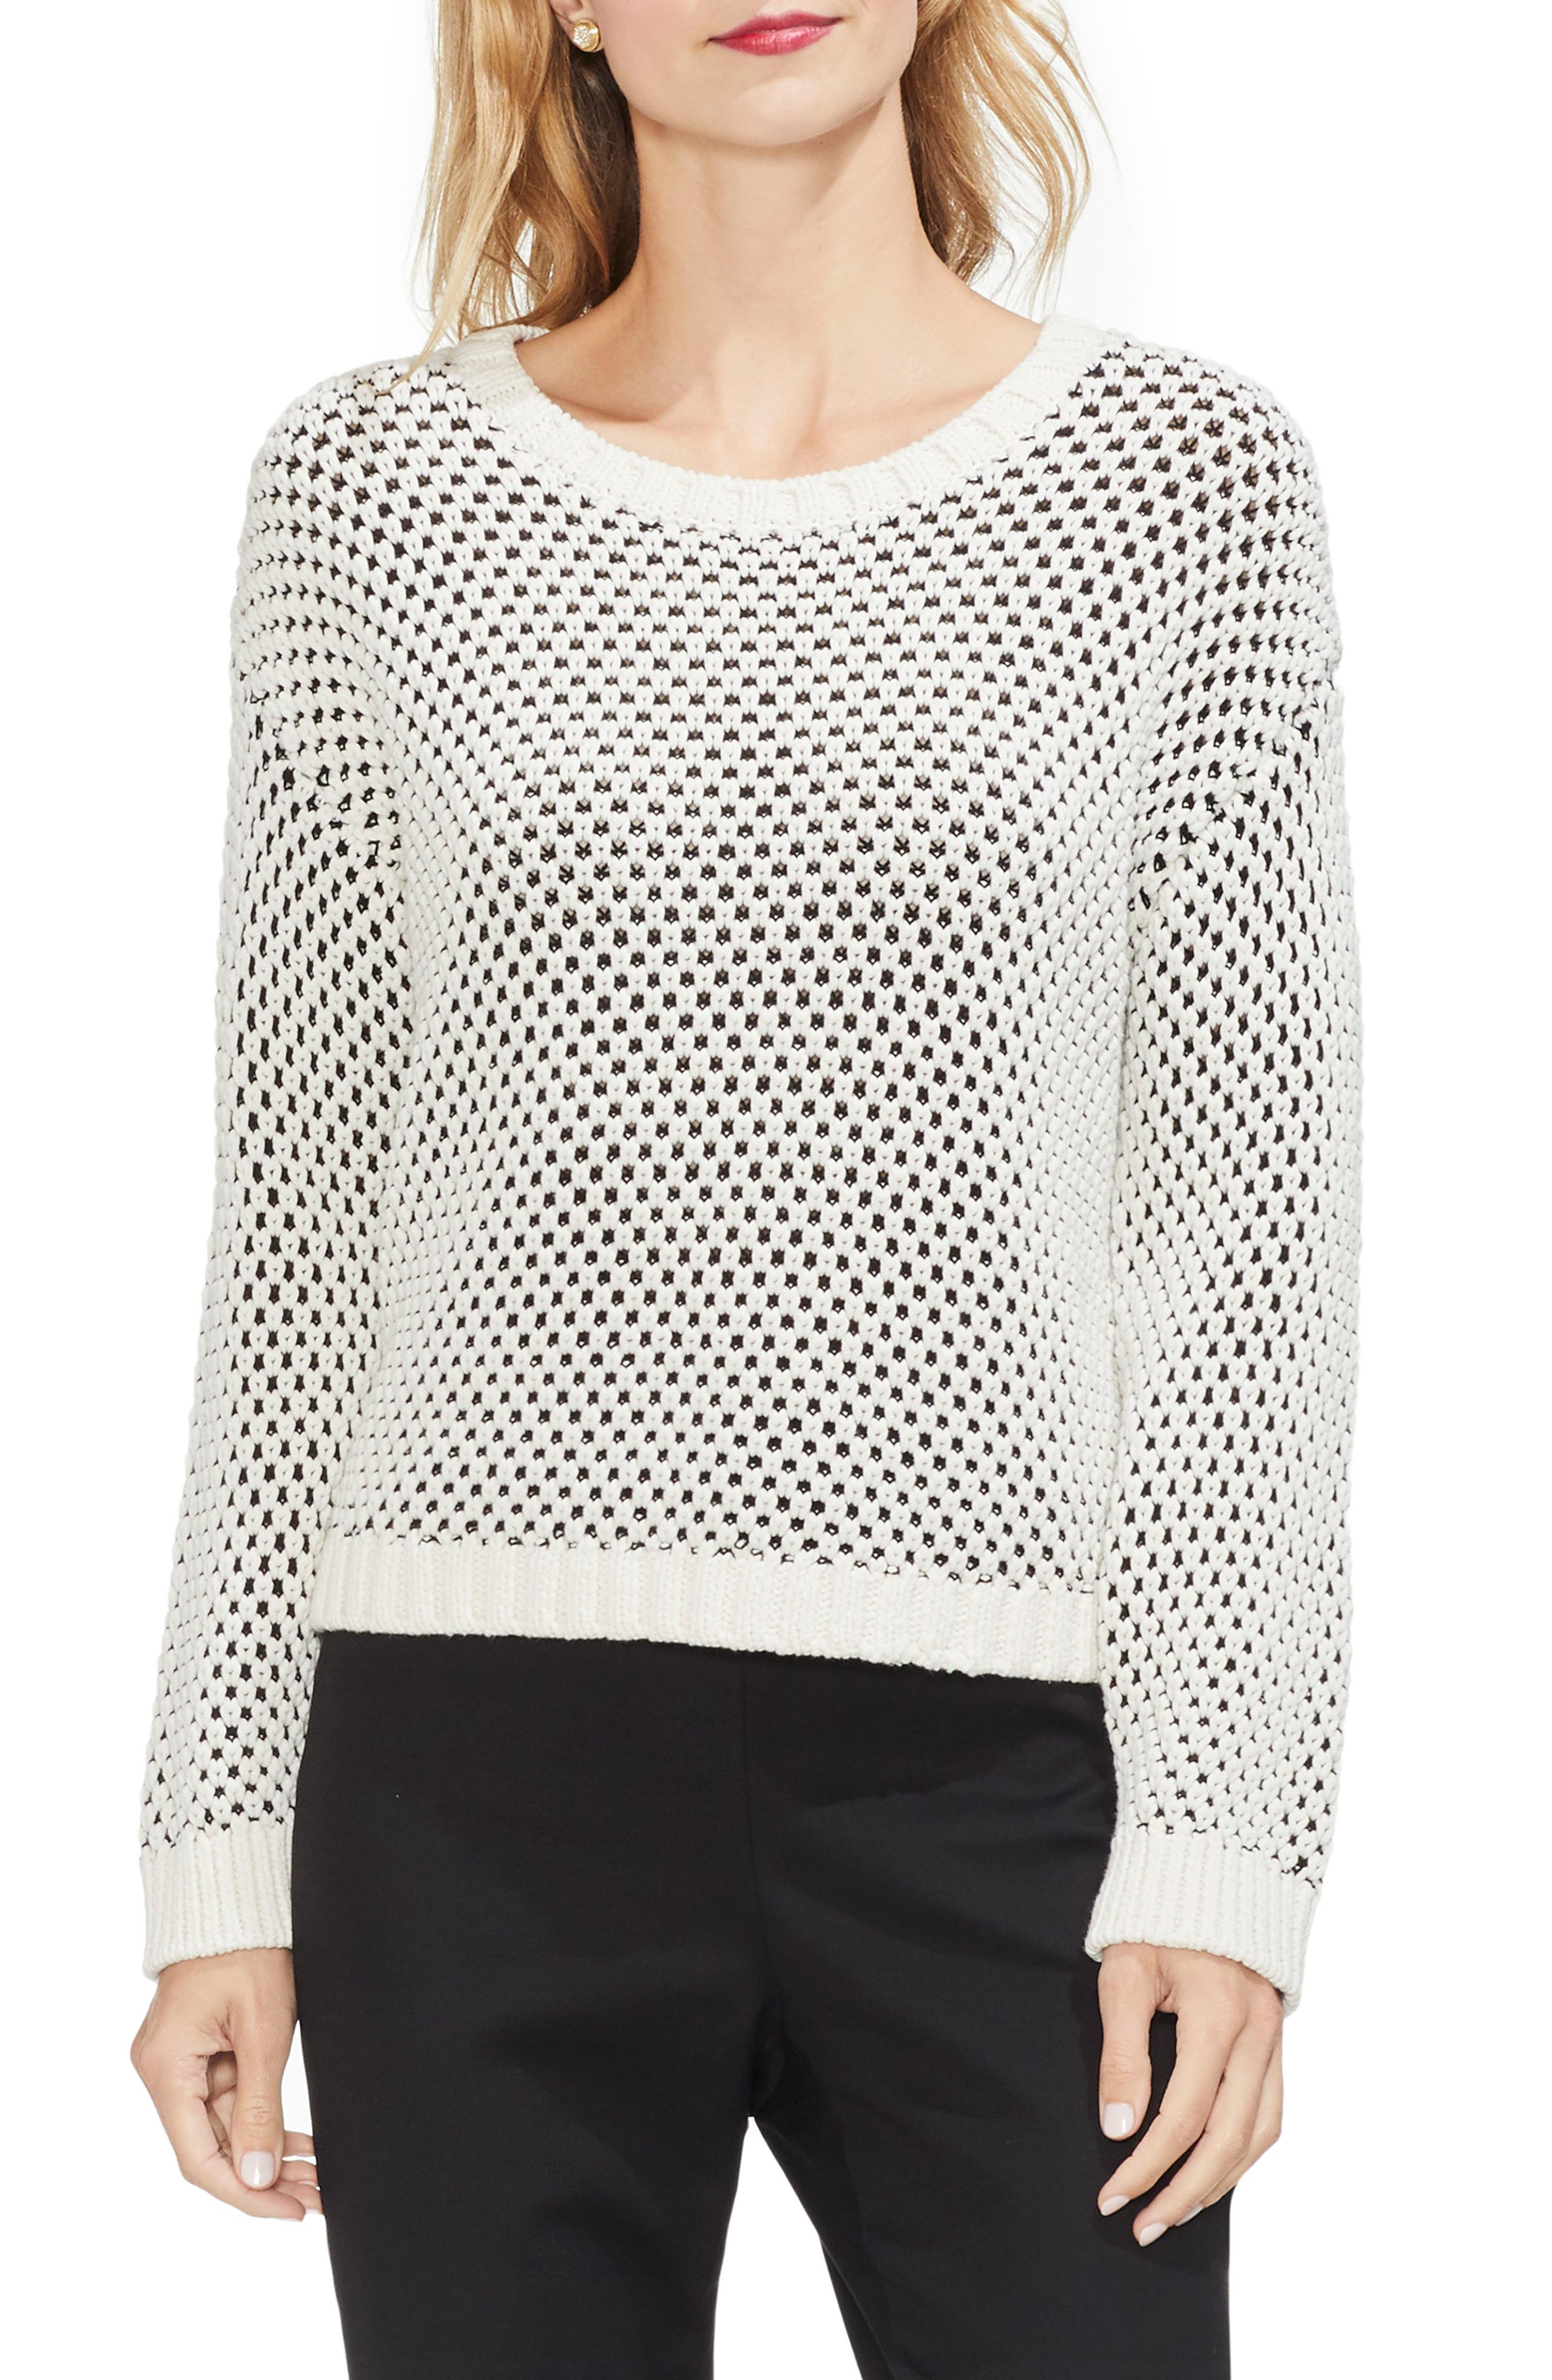 VINCE CAMUTO,                             Textured Stitch Sweater,                             Main thumbnail 1, color,                             ANTIQUE WHITE